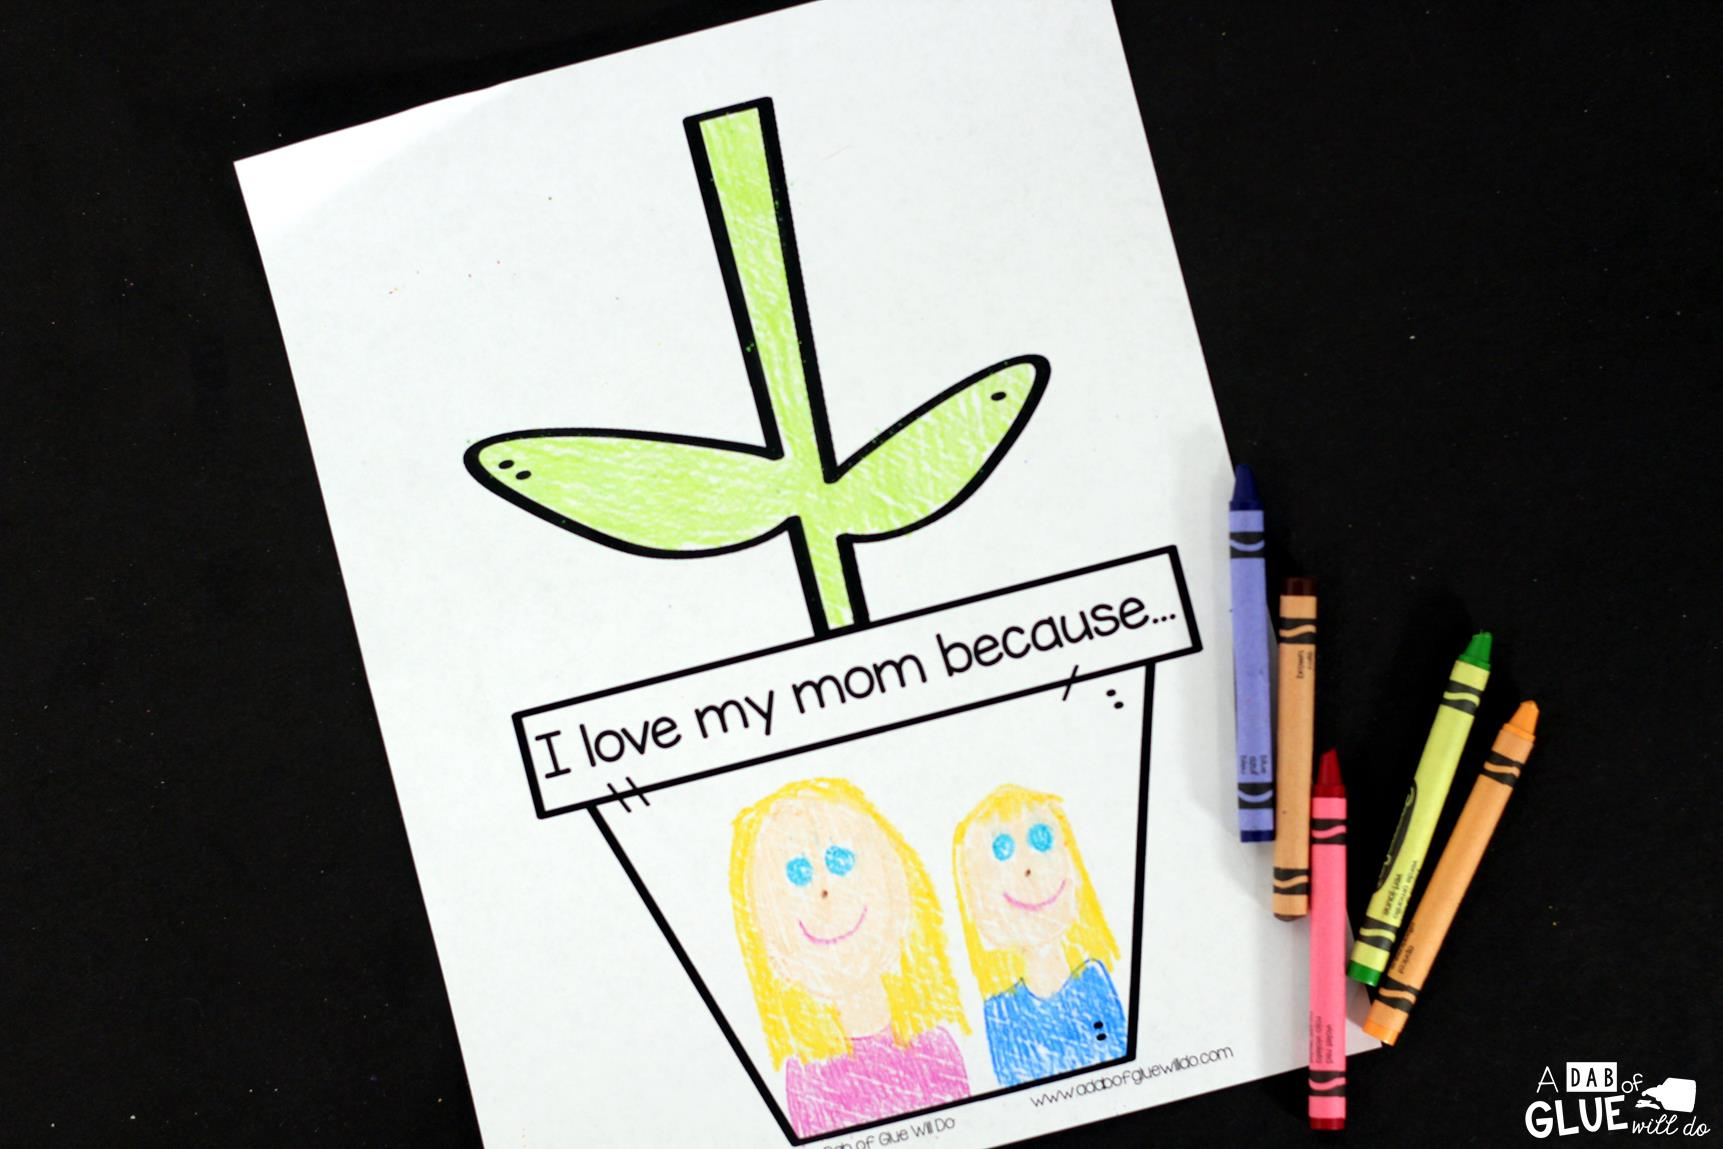 Show your mom love today with Mother's Day flower gift! Easy kids craft for spring and Mom! Use in your lower elementary classrooms from Kindergarten to Fifth Grade. Practice fine motor work, following directions, and flower vocabulary in one great craft for kids.